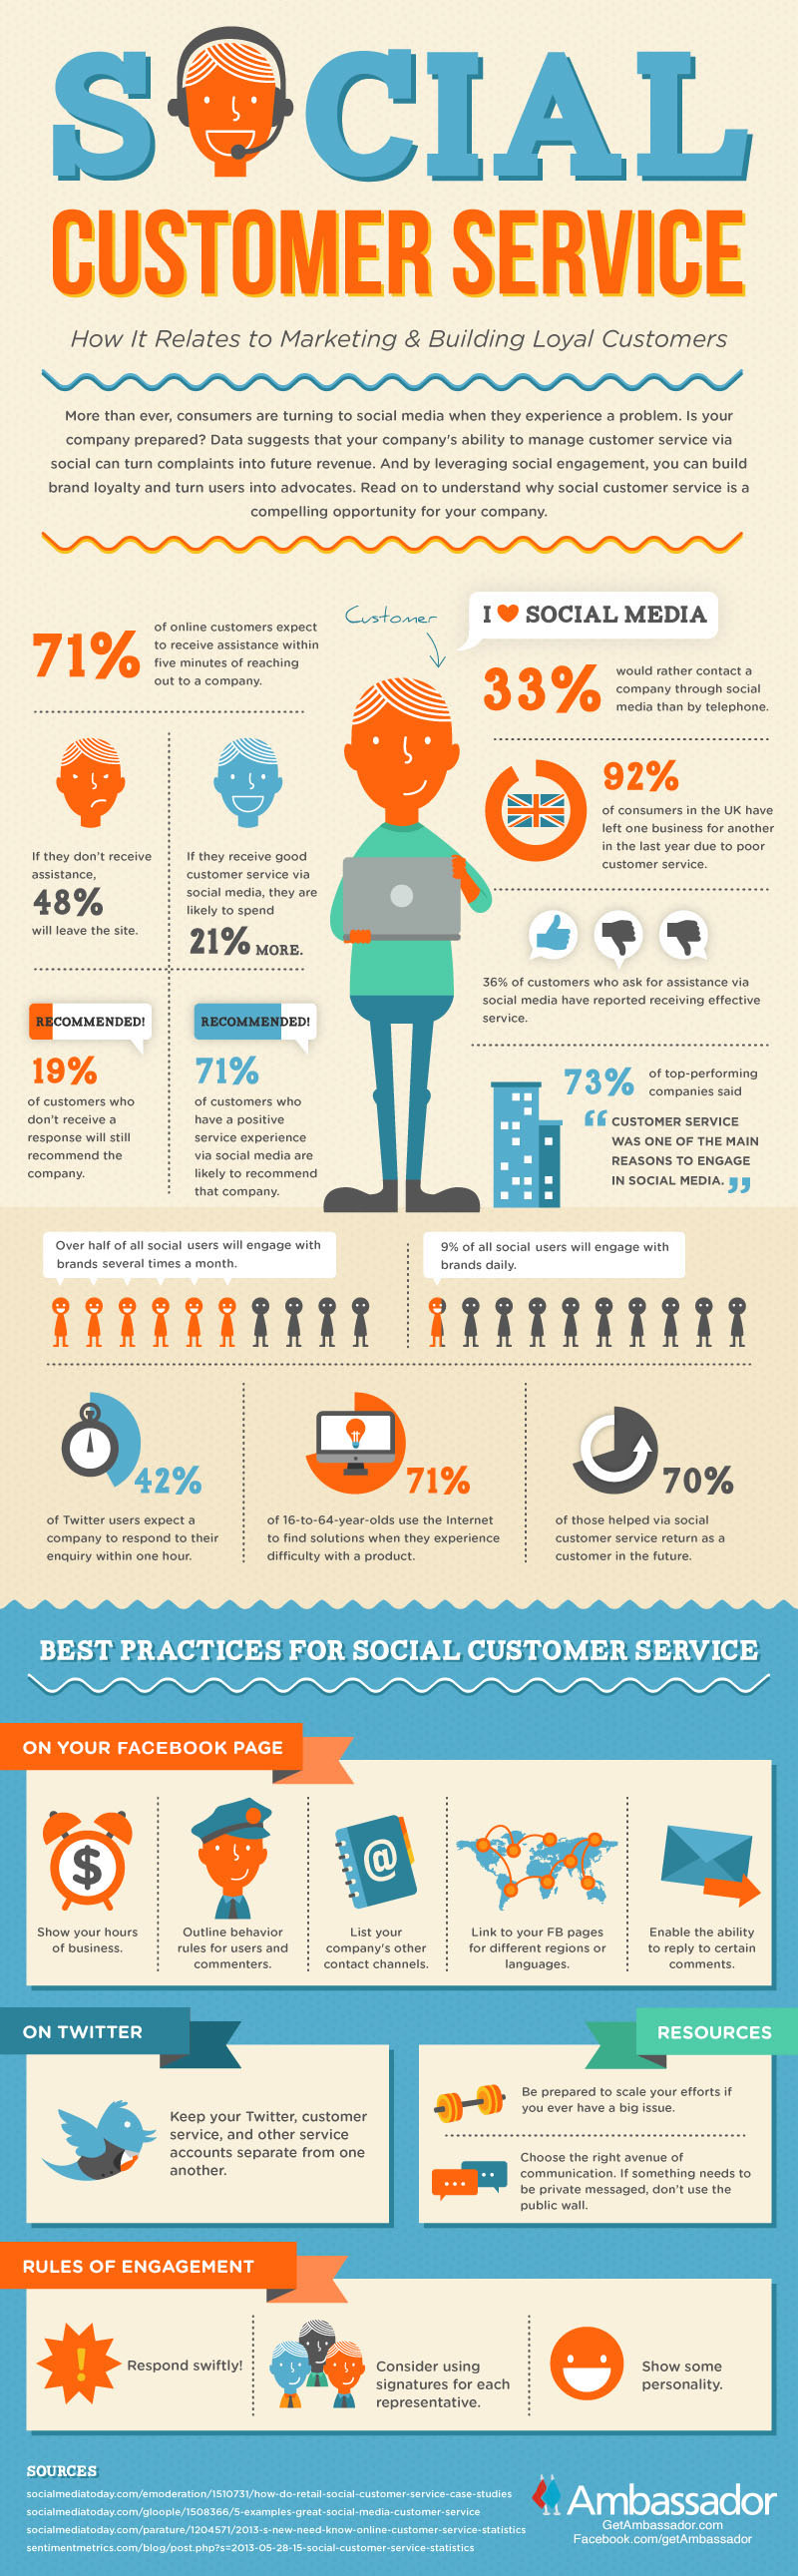 Social Customer Service (Infographic)